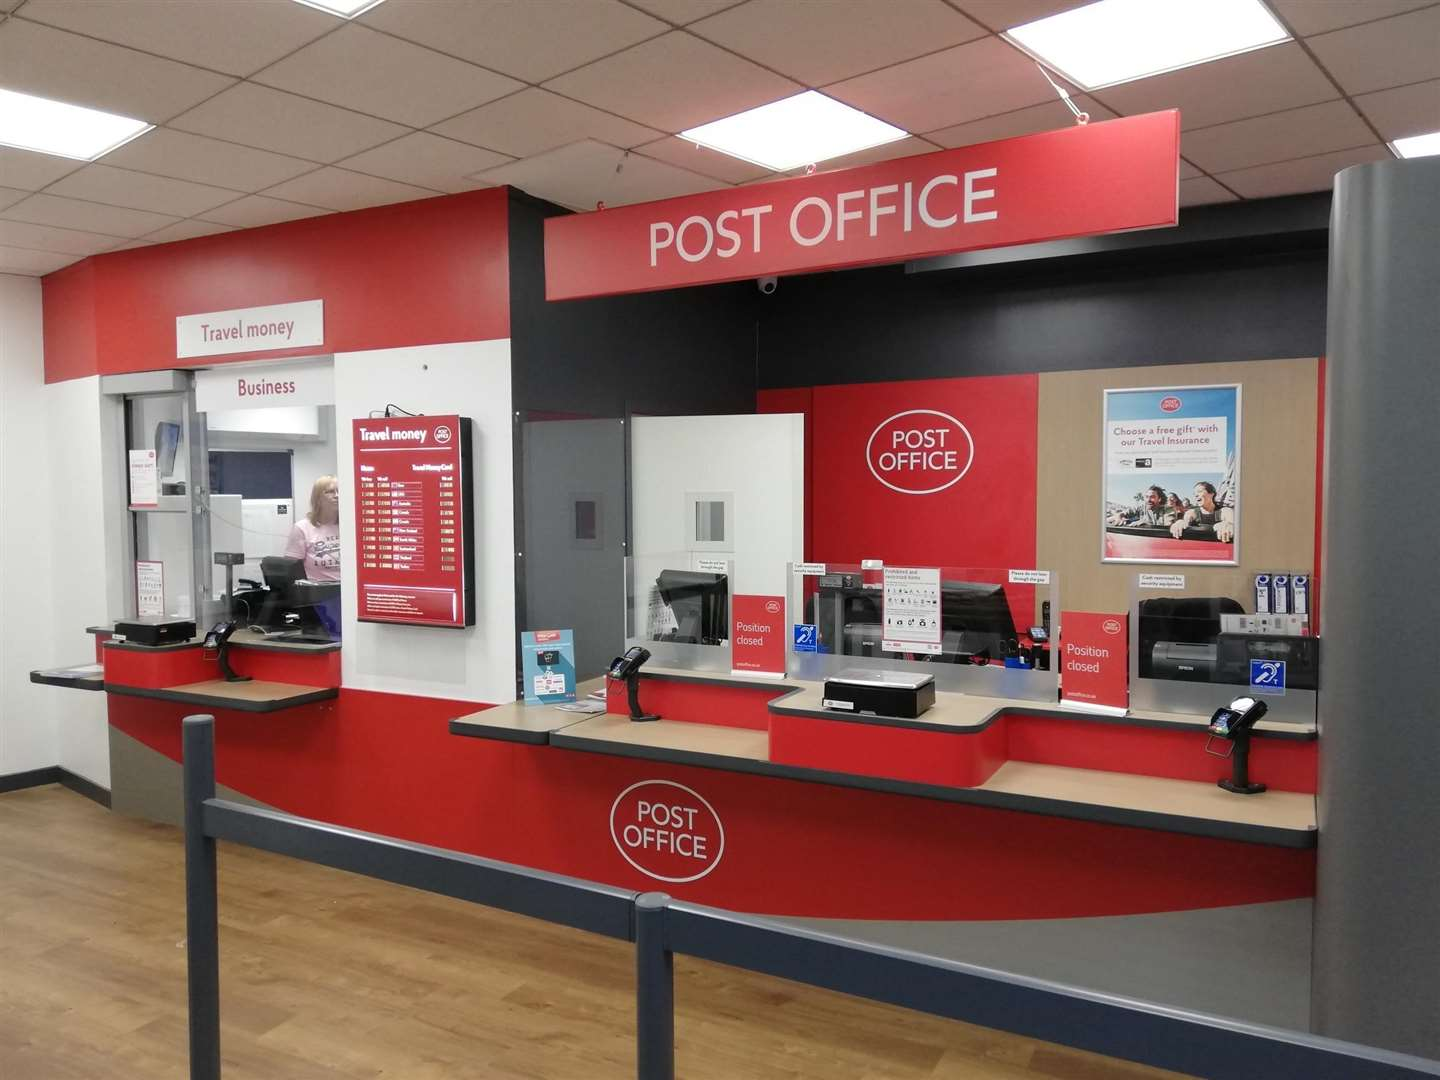 Time is running out for Tax Credit or Child Benefit claimants with a Post Office Card Account to set up a new account